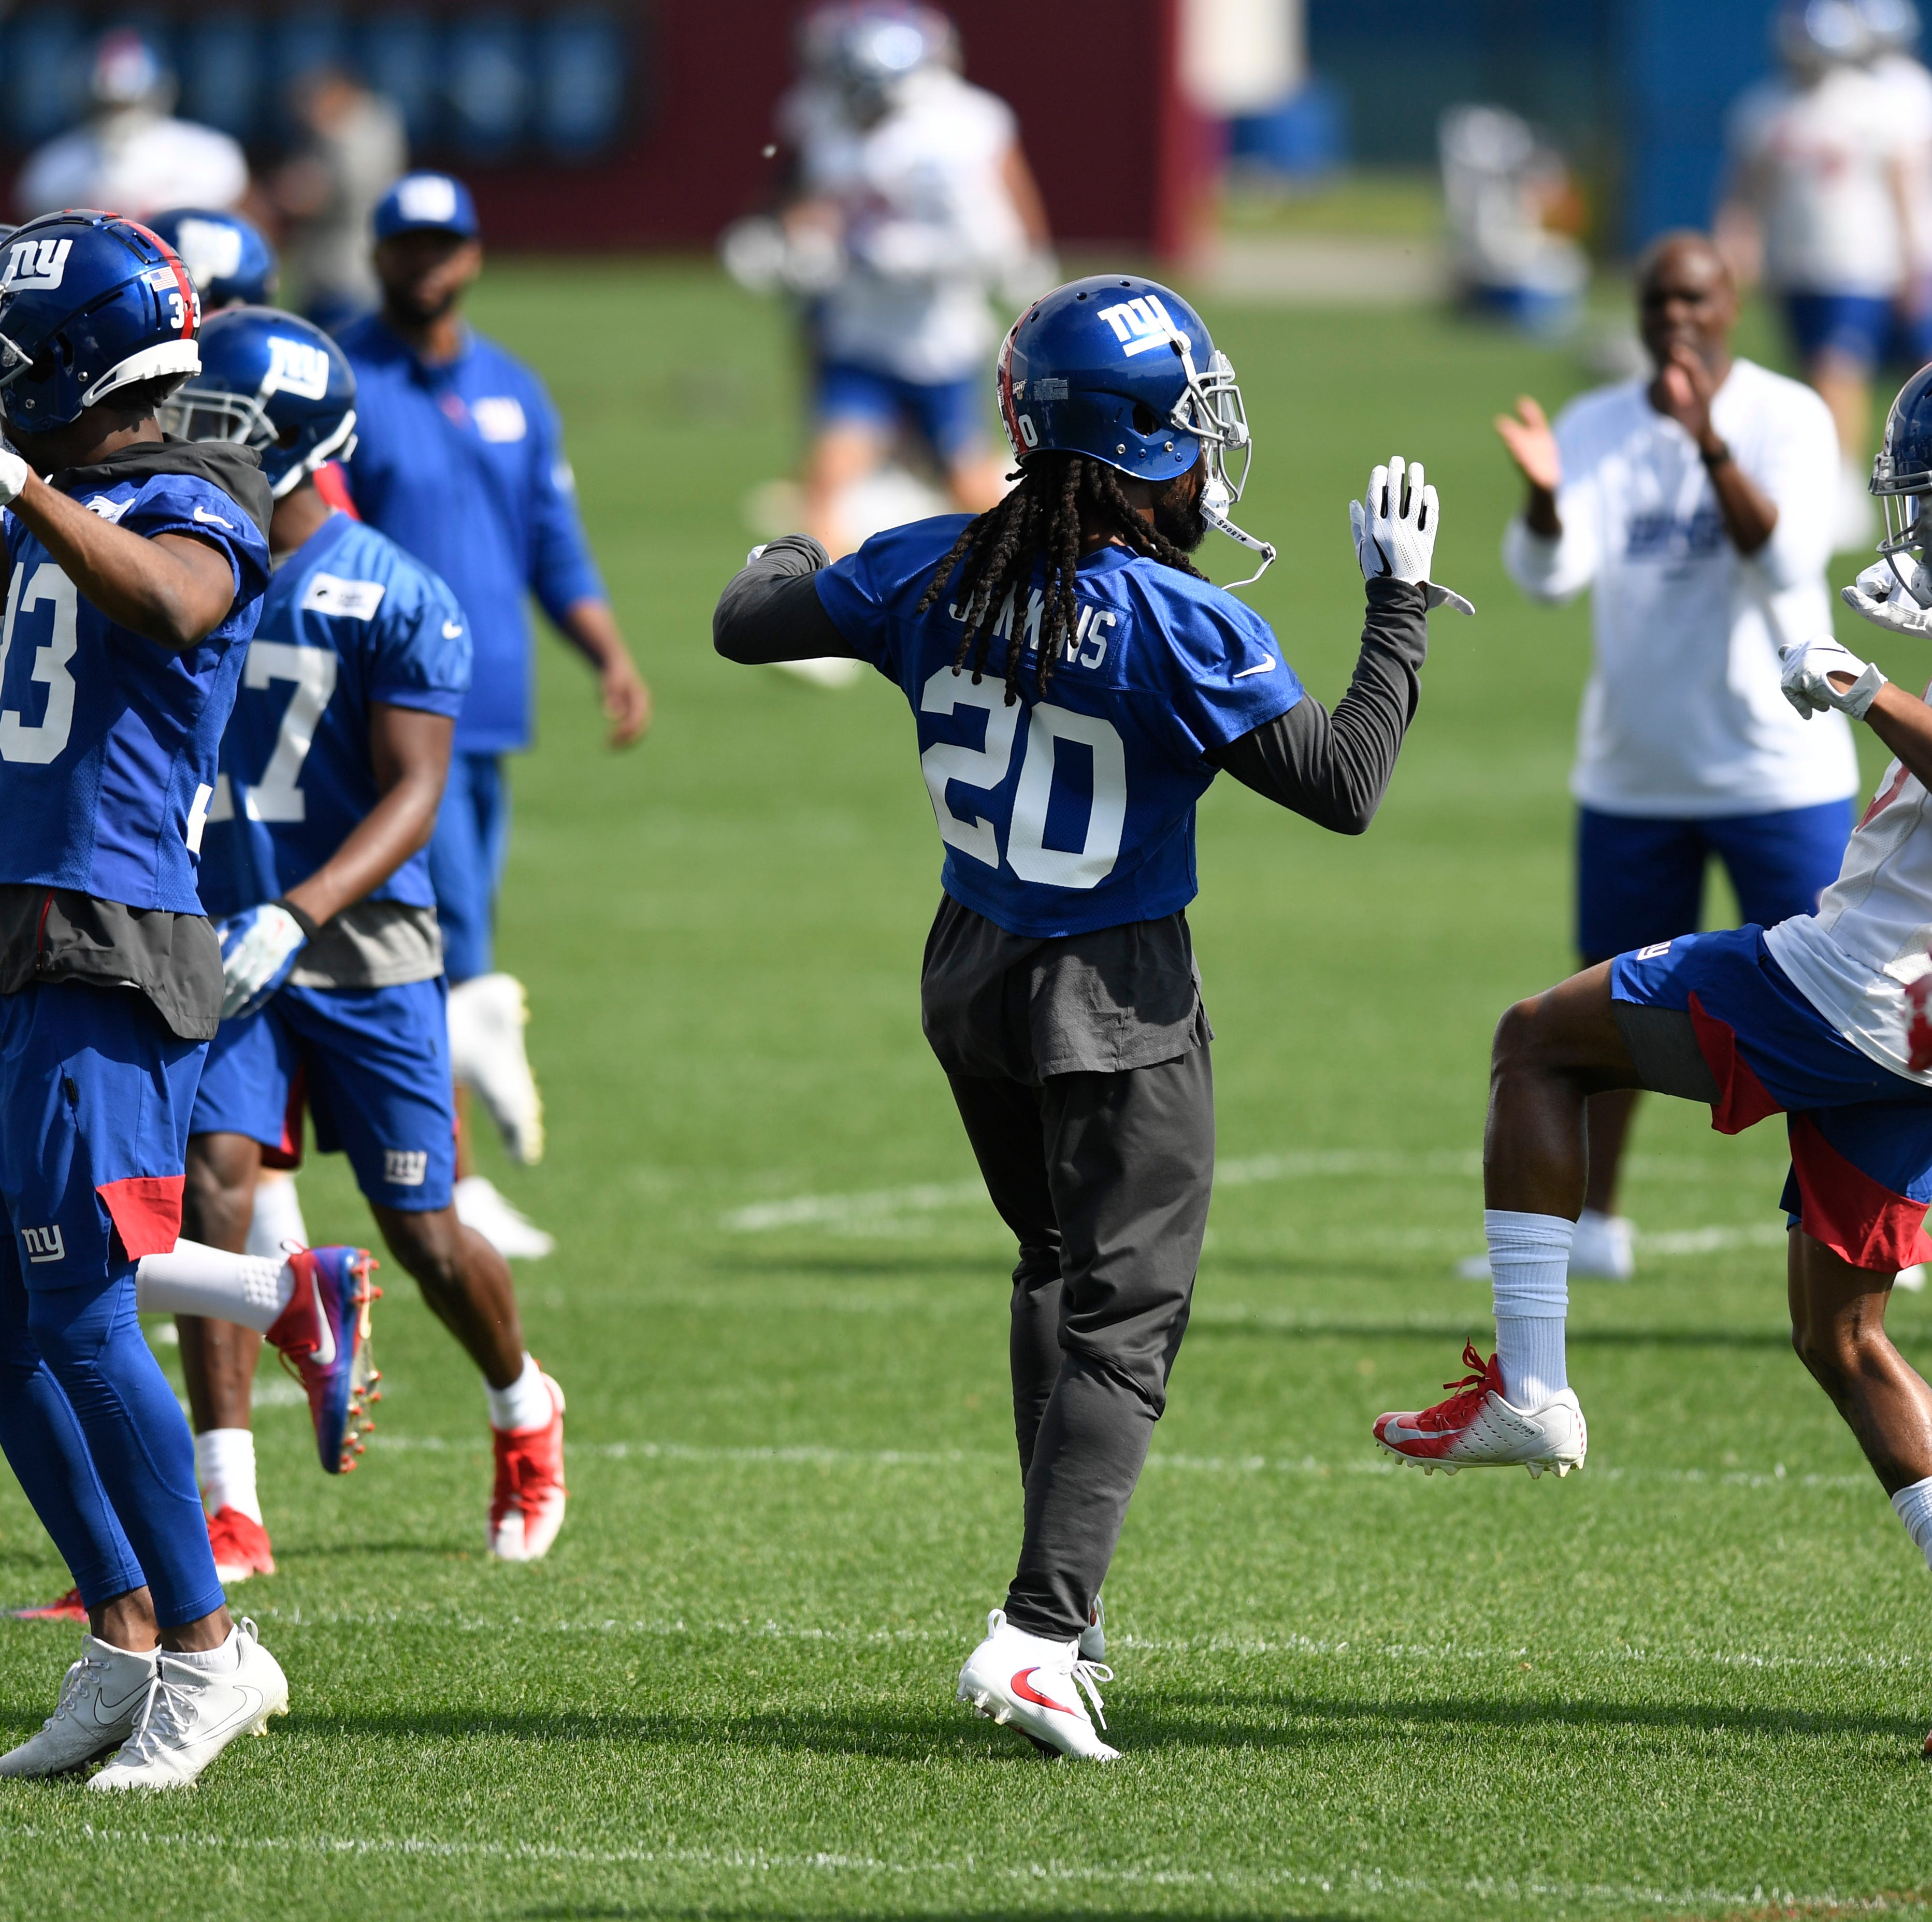 NY Giants: 5 takeaways from the start of OTA practices